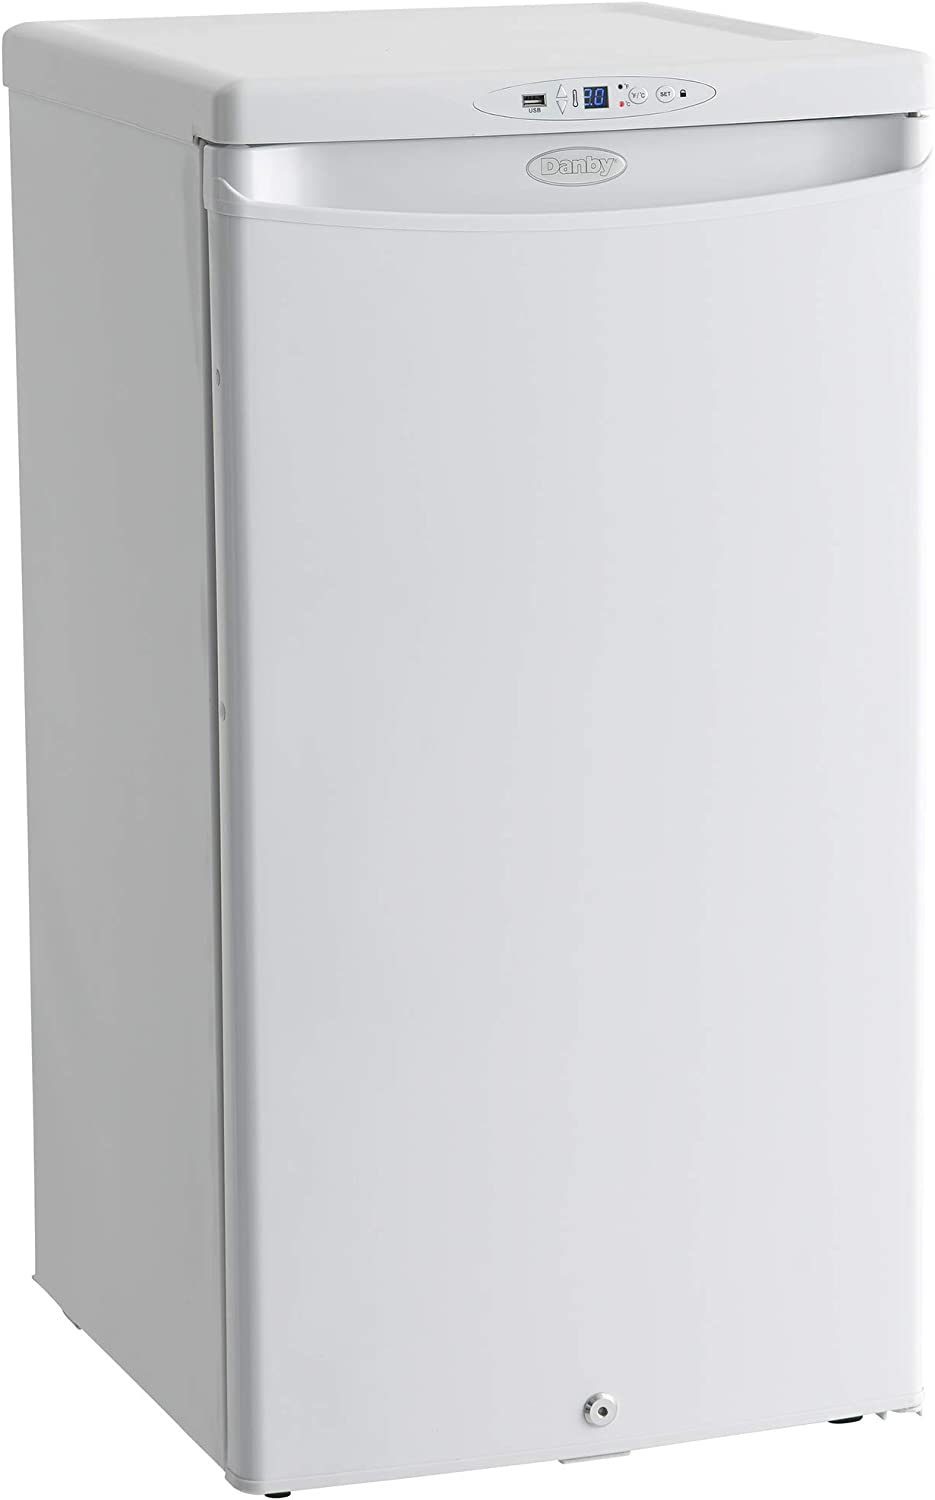 Danby DH032A1W-1 Health Commercial Grade Medical Mini Fridge, White